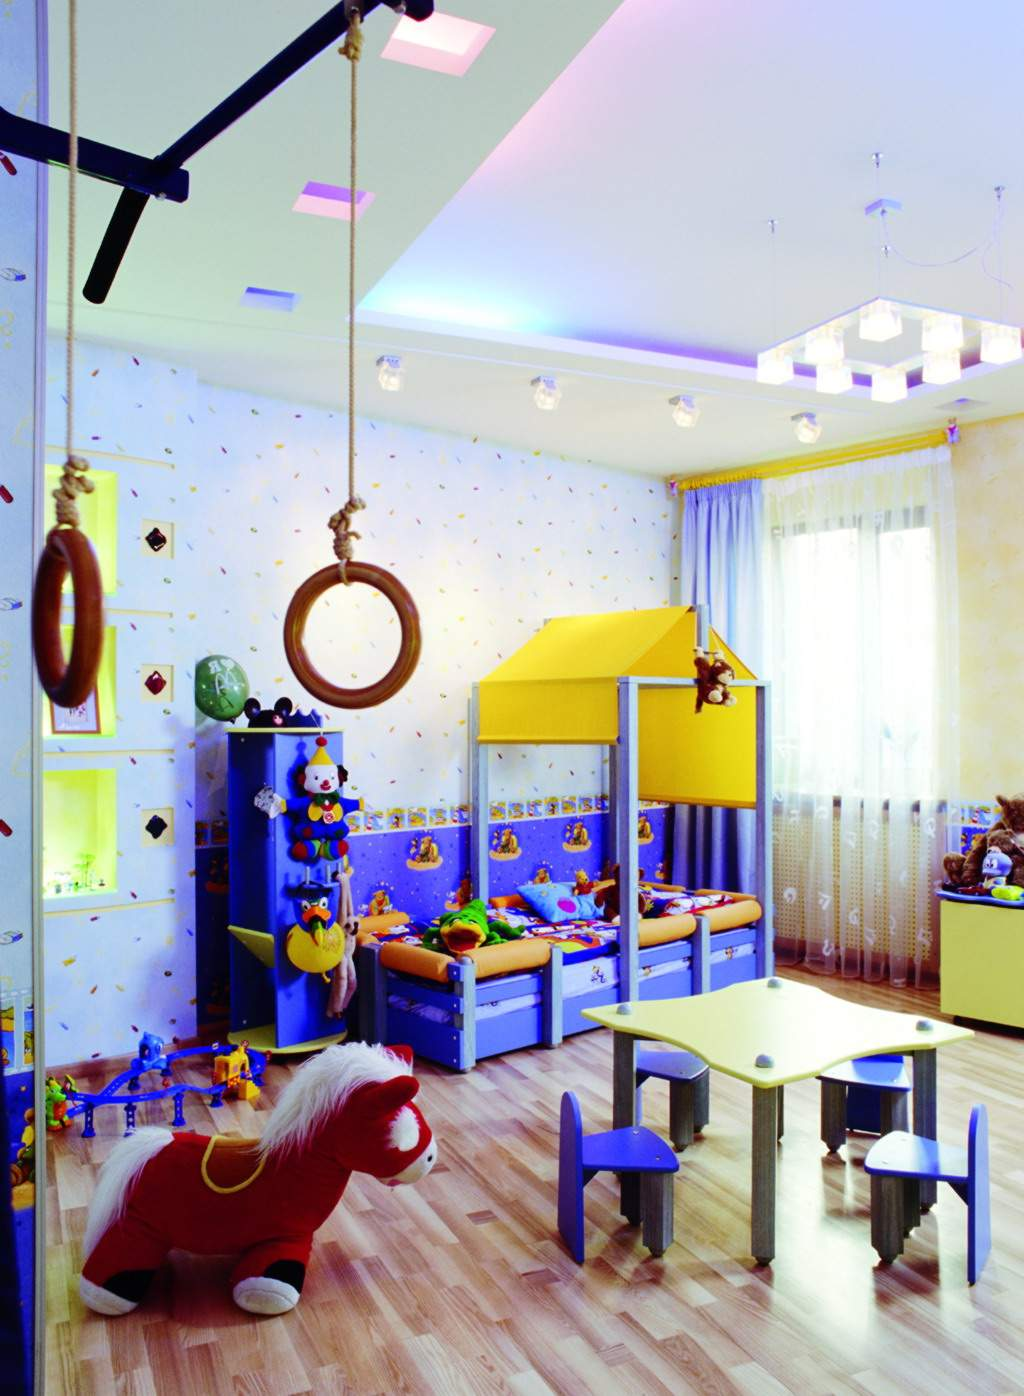 Decor Ideas Kids 15 Creative Kids Bedroom Decorating Ideas